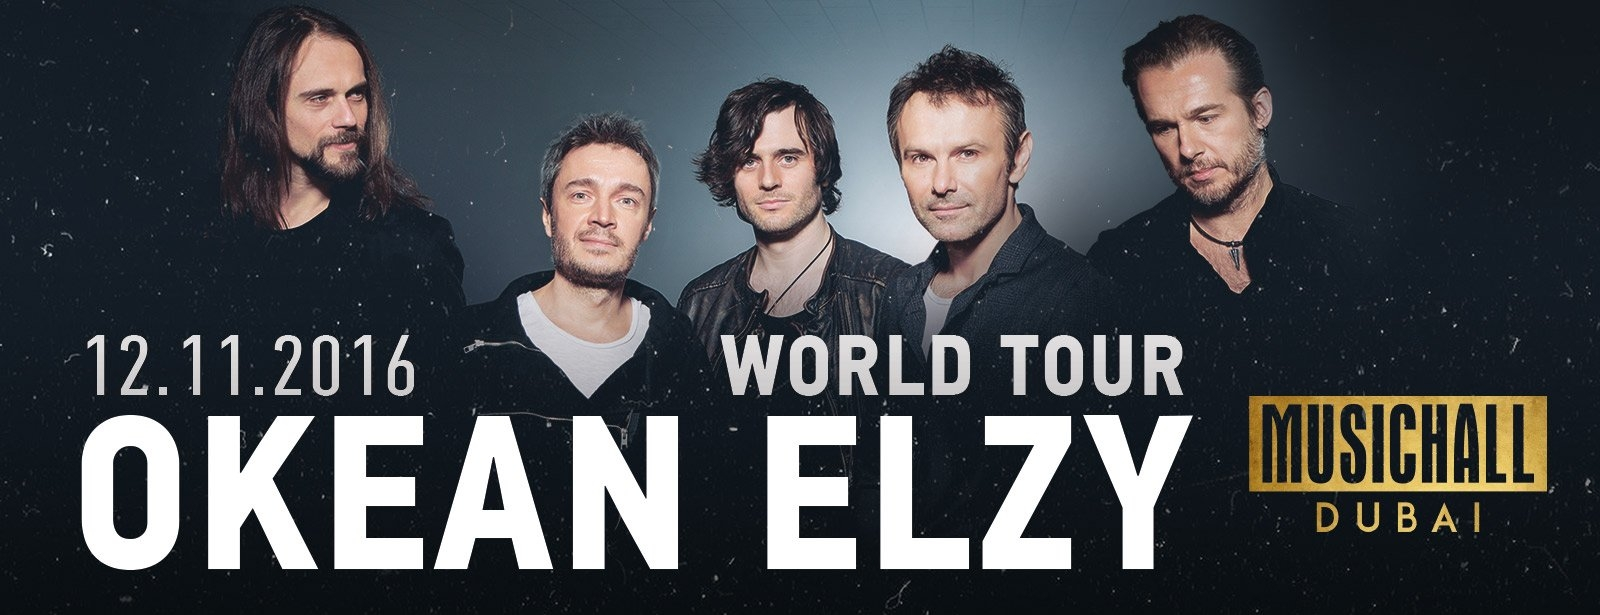 Technology Management Image: Okean Elzy Live In Dubai